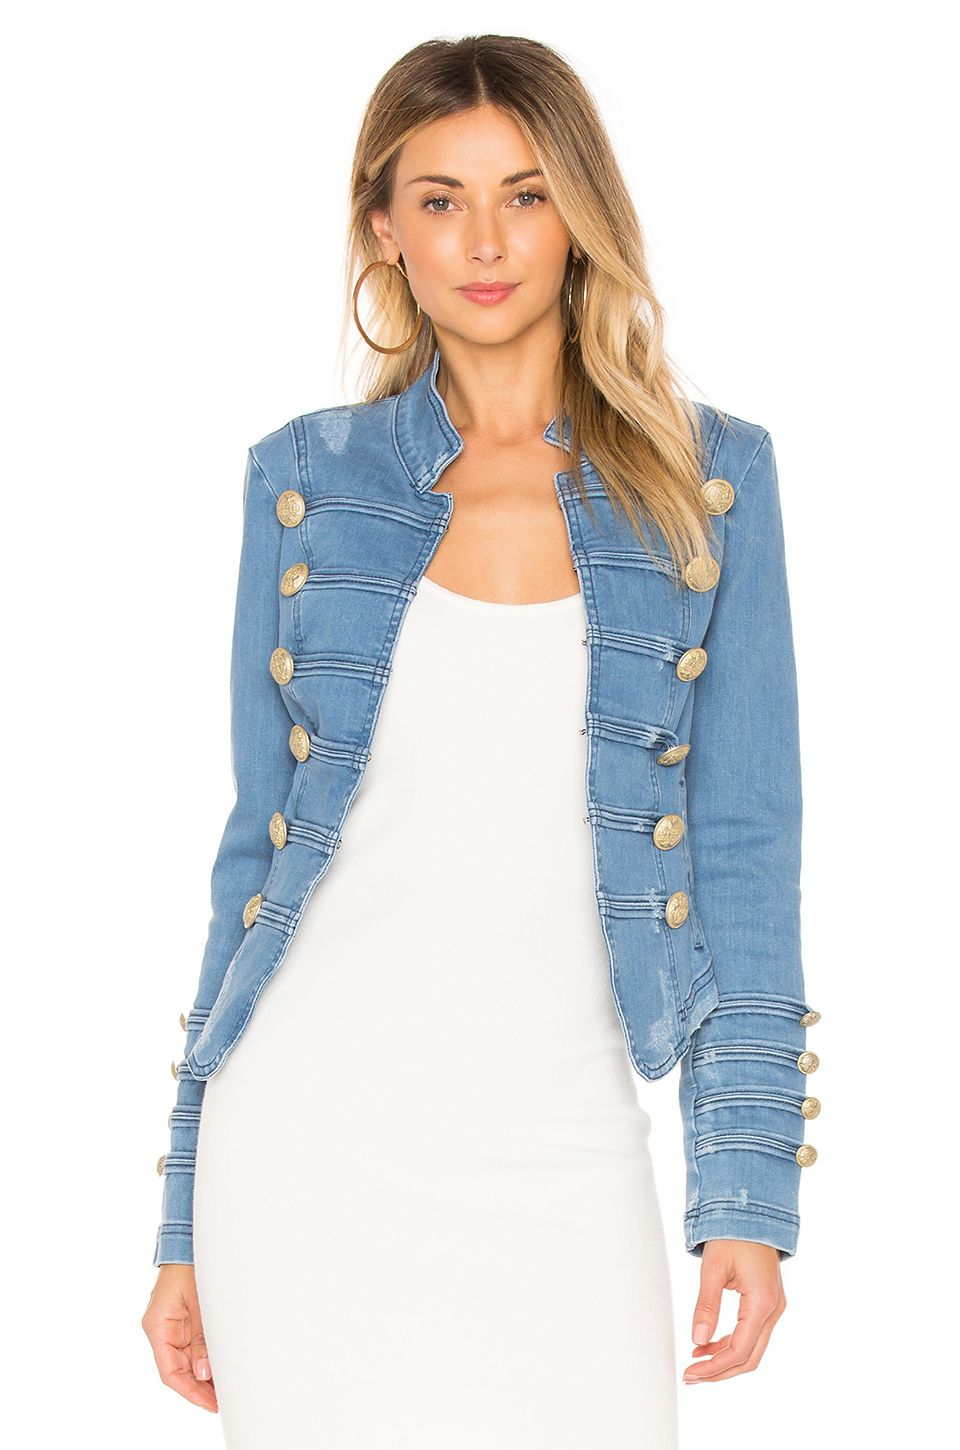 e0ff35ae5a12 FREE PEOPLE FITTED MILITARY DENIM JACKET.  freepeople  cloth ...